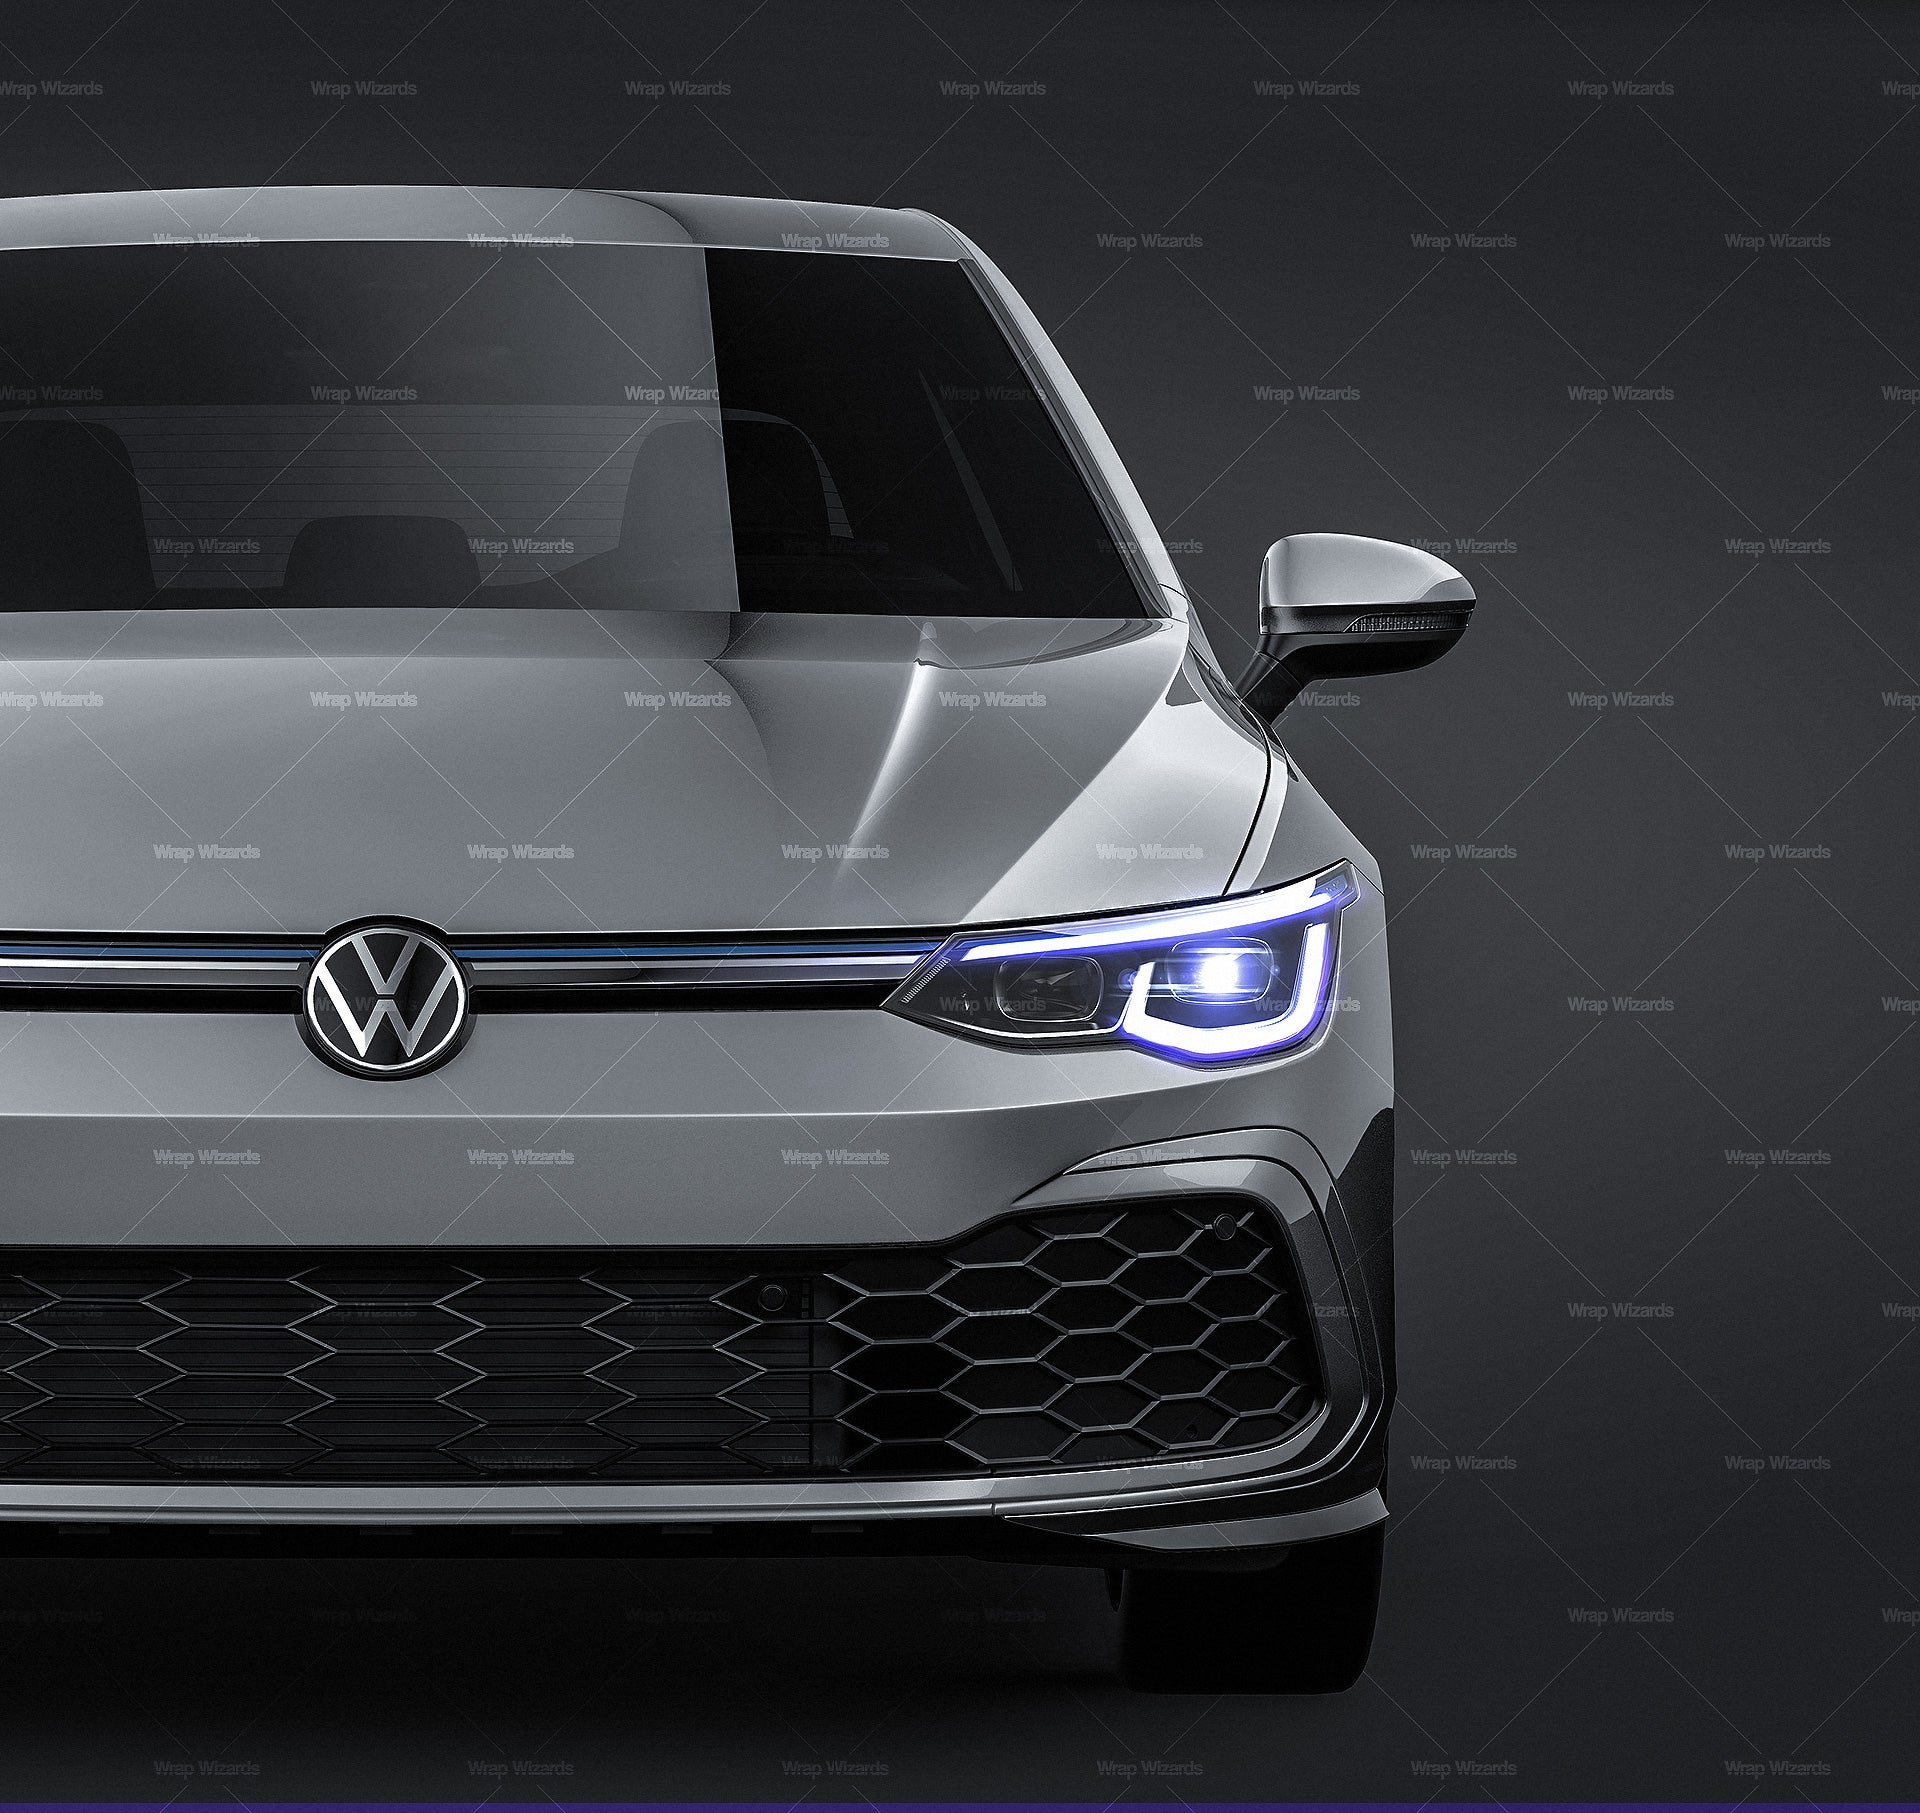 Volkswagen Golf 5-Doors MK8 GTE 2020 - all sides Car Mockup Template.psd